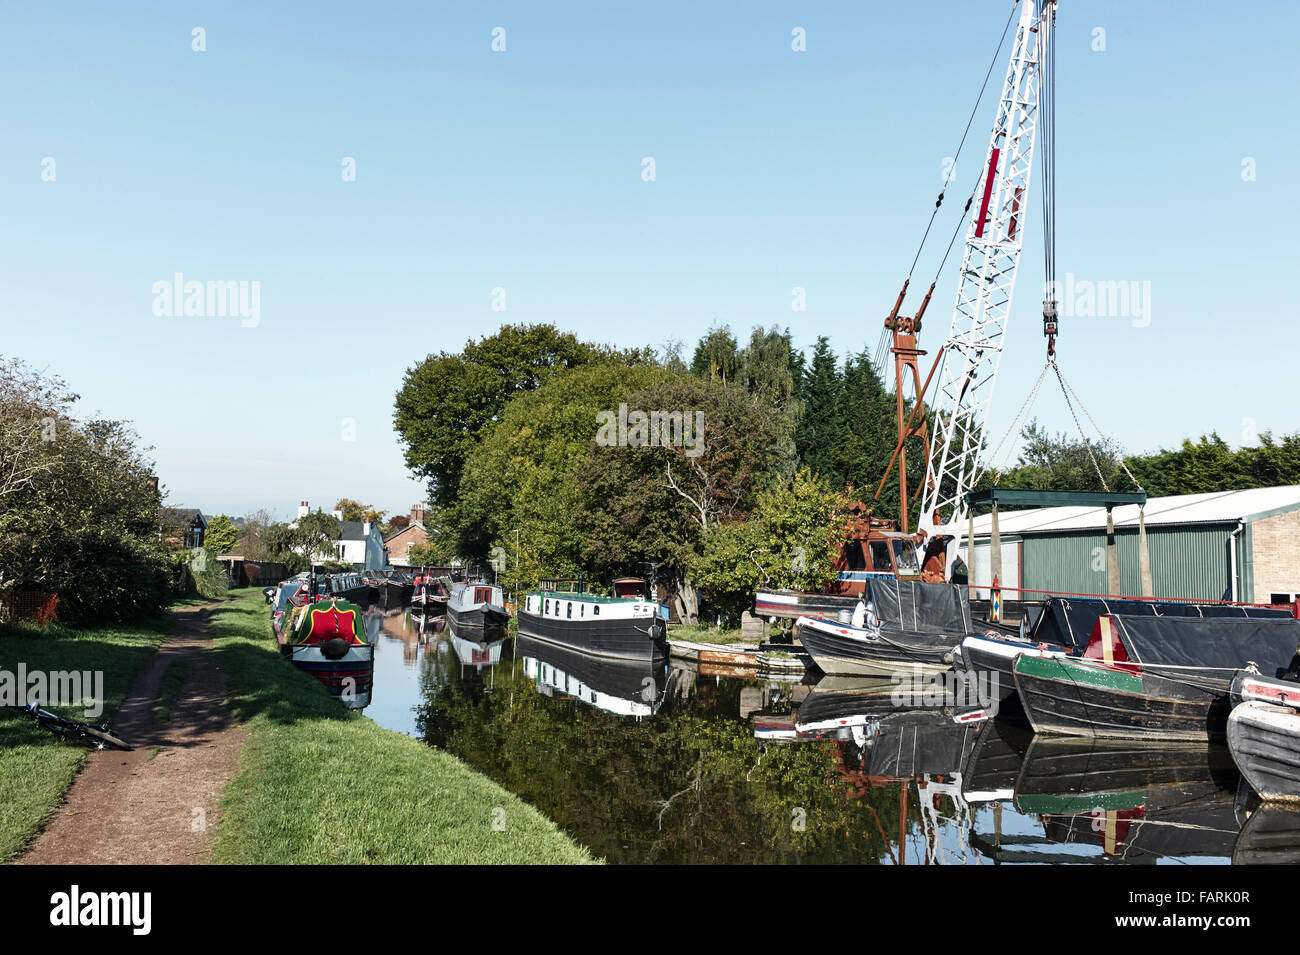 Congested canal at Stone - Stock Image